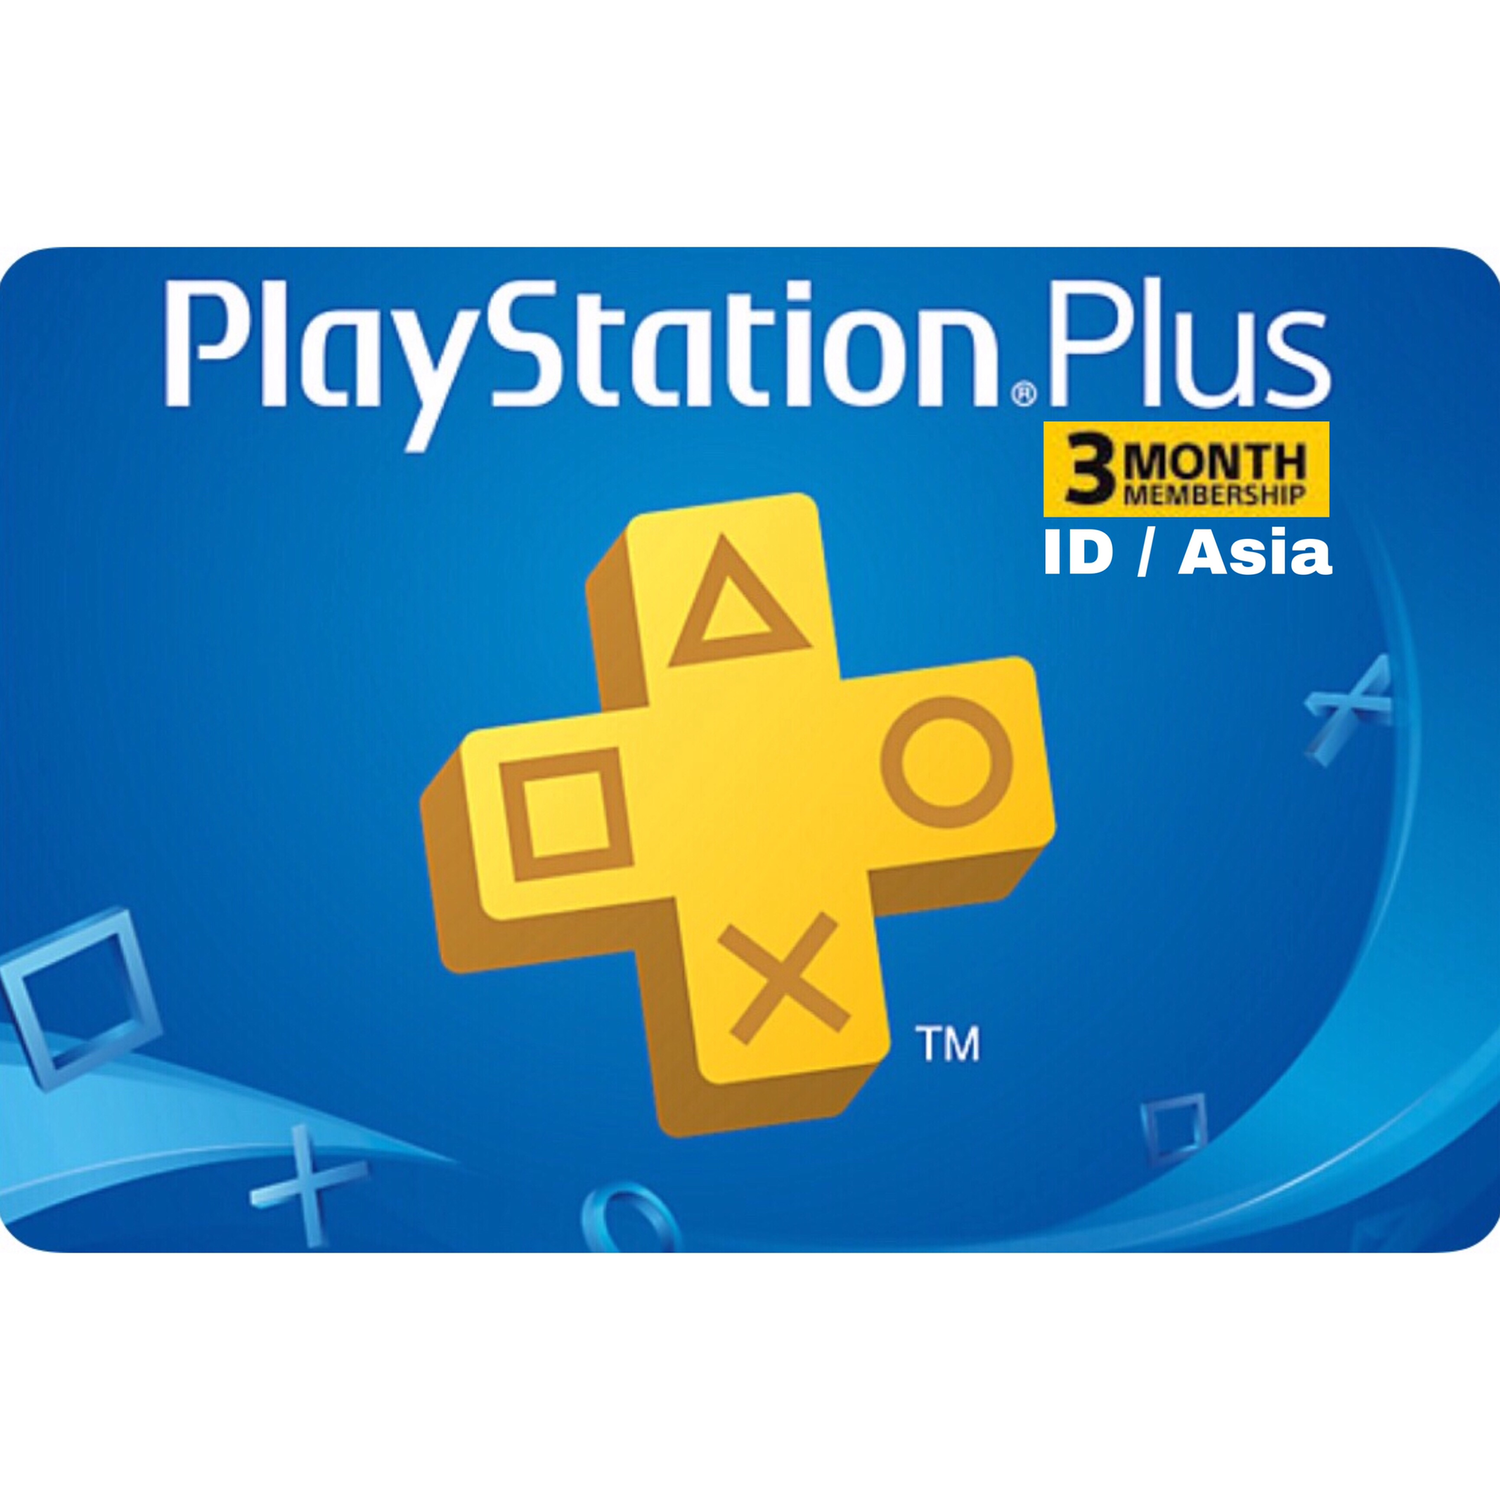 PSN Plus Card - Playstation Plus Indonesia 3 Months Membership